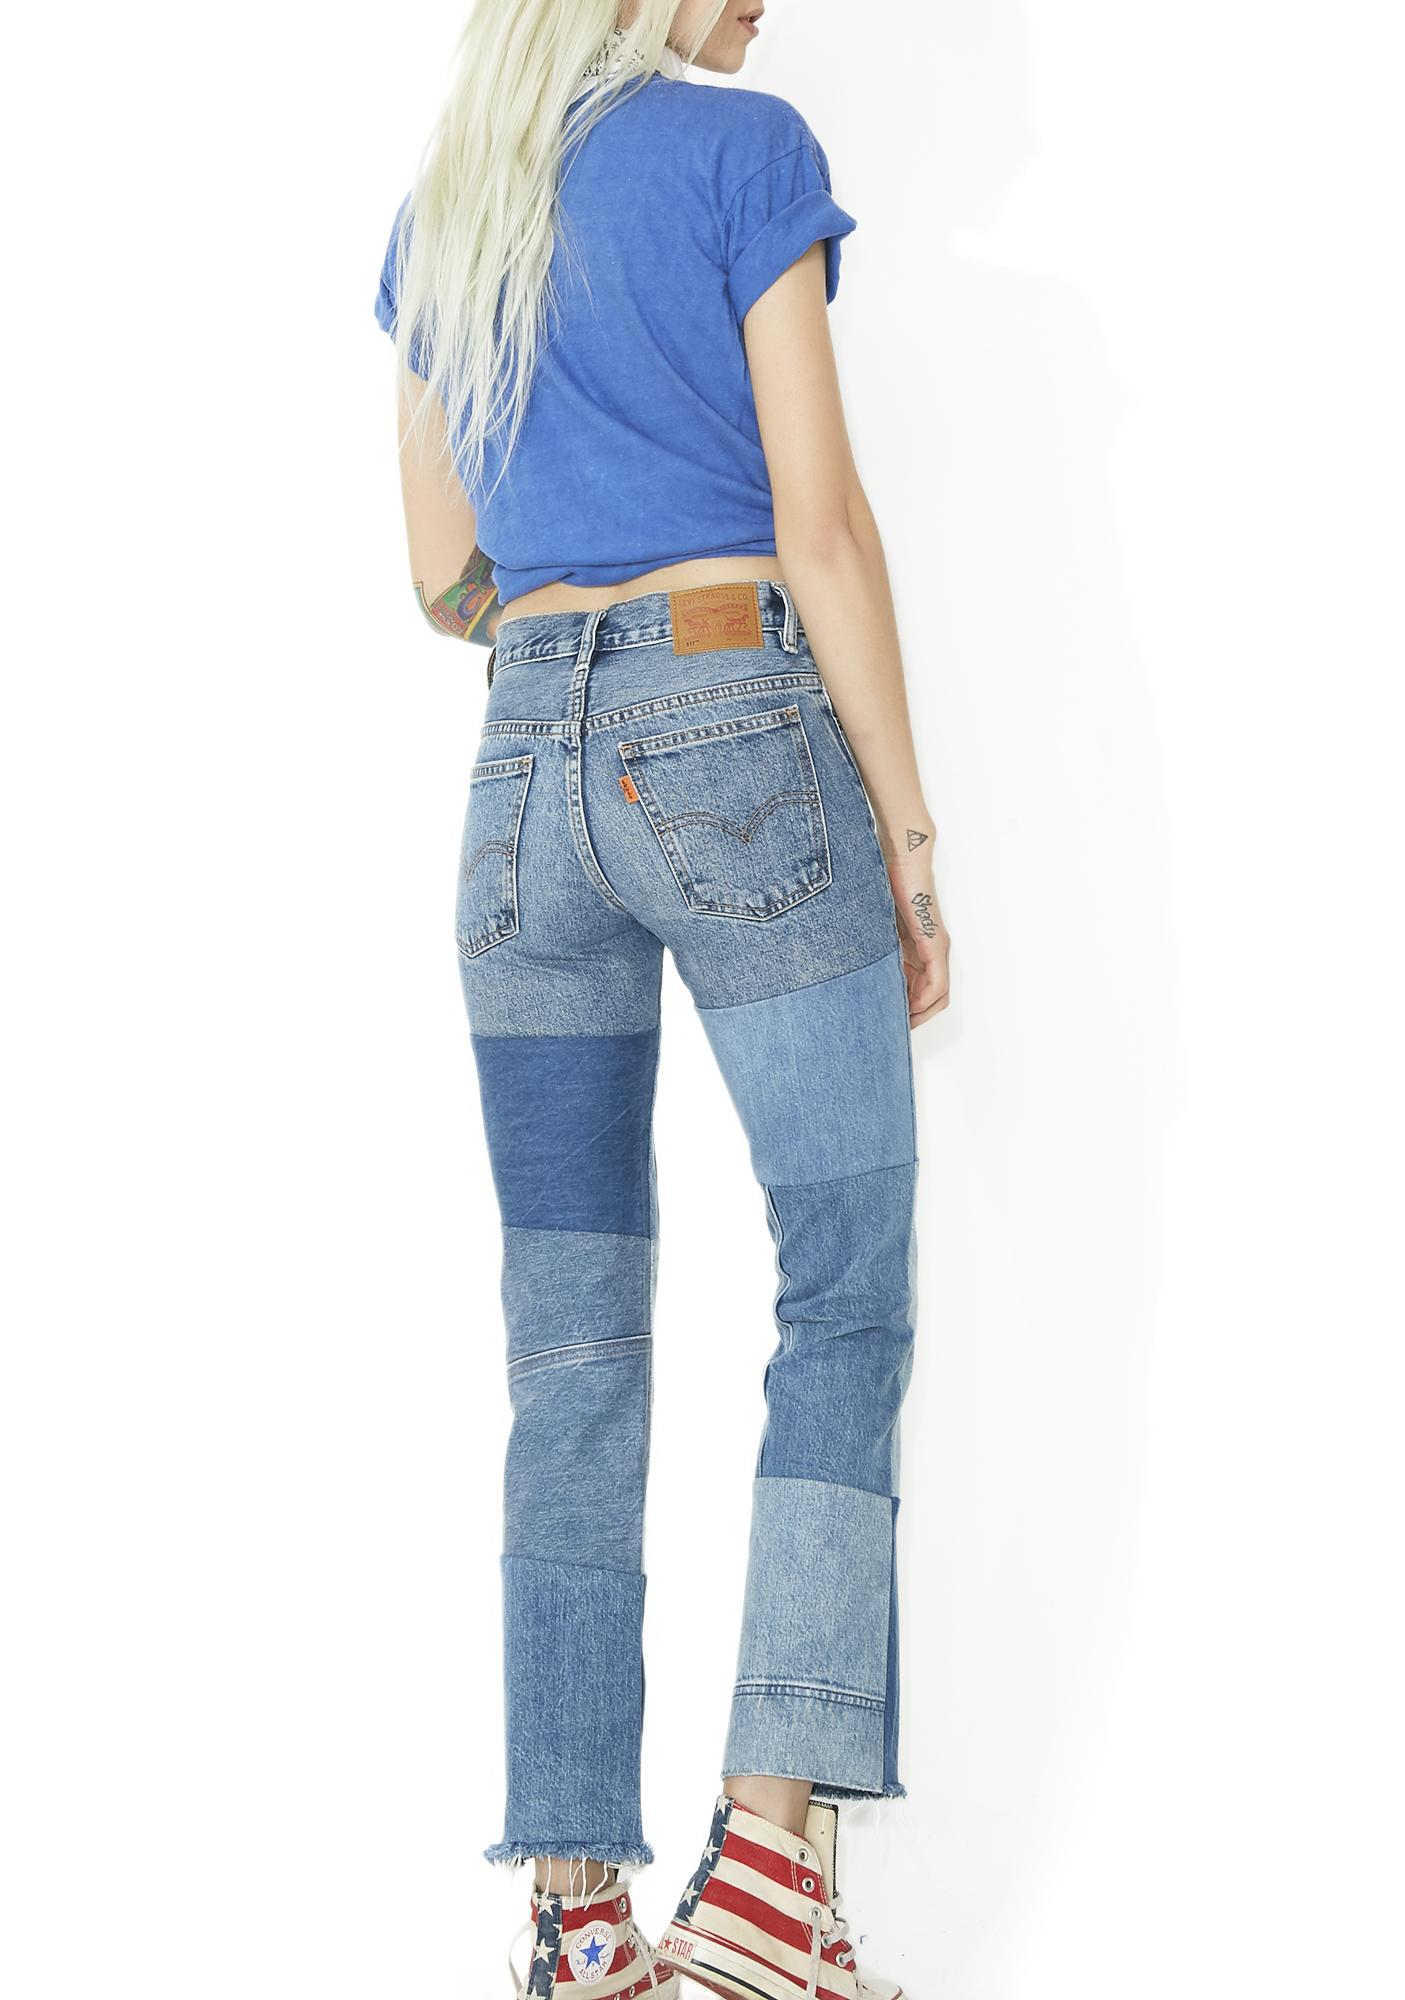 517 Best Images About 4th Of July Nail Art On Pinterest: Levis Orange Tab 517 Cropped Boot Cut Jeans